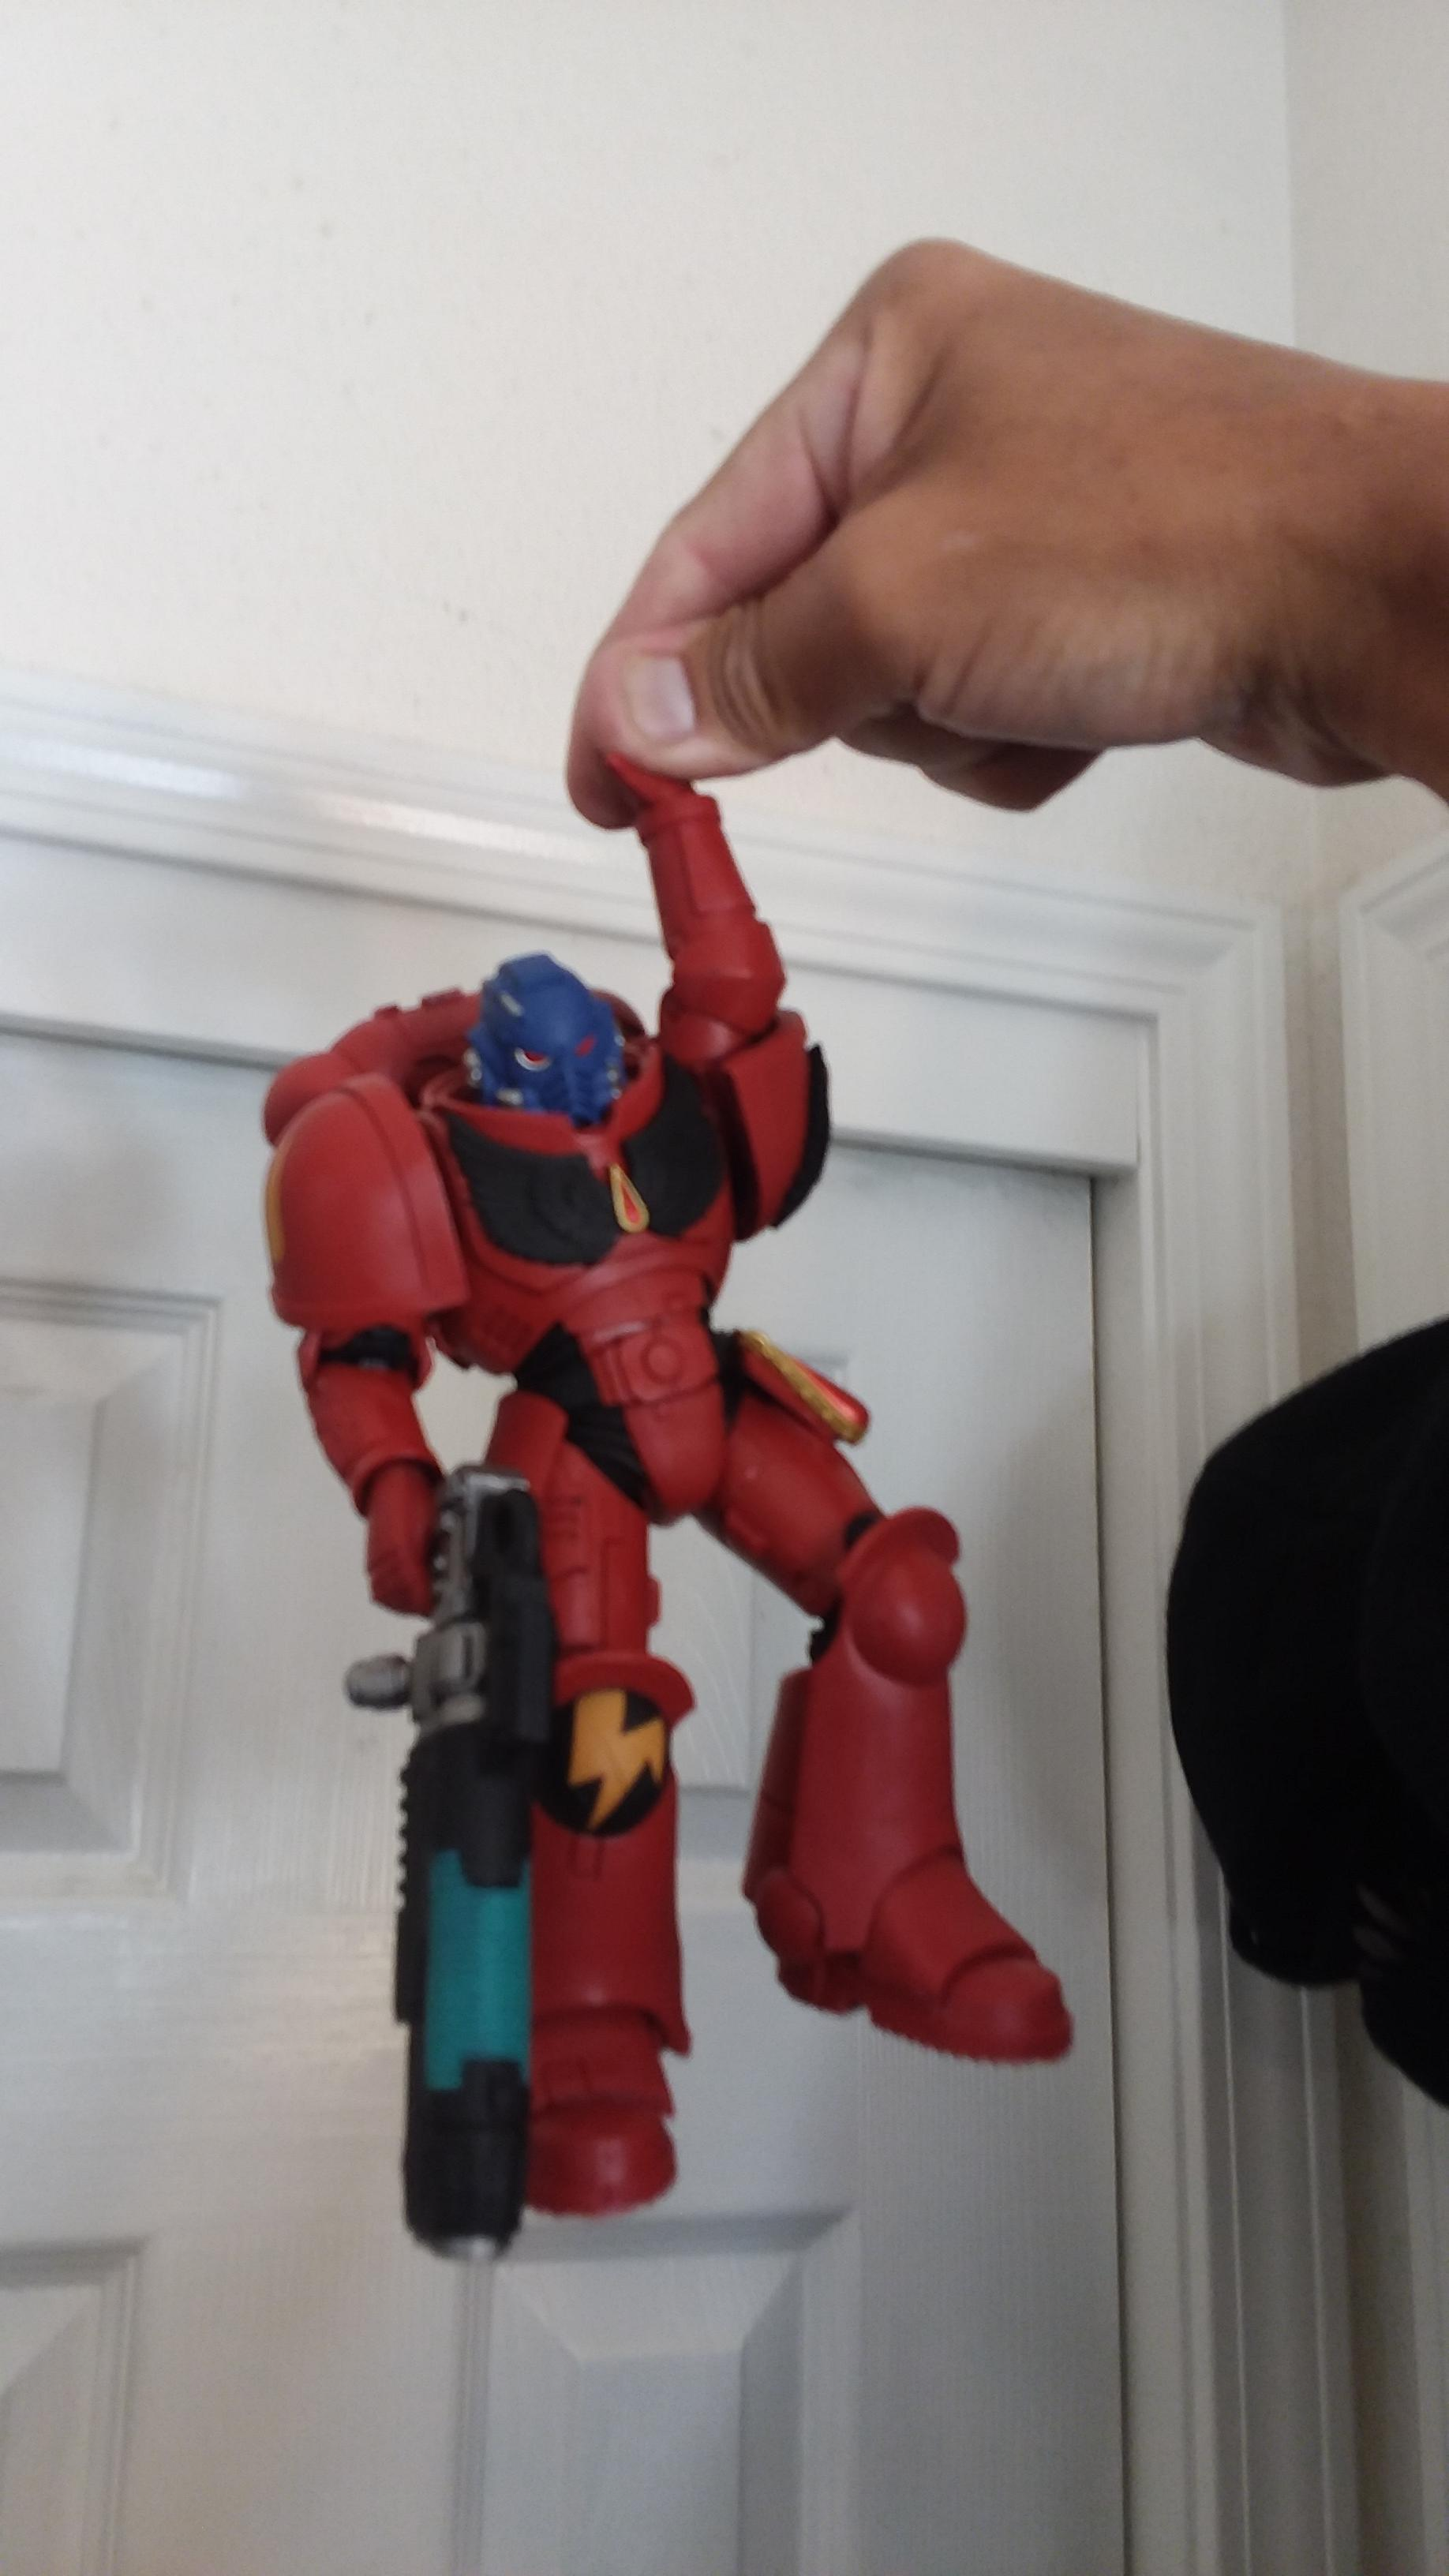 Action Figure, Space Marines, Toy